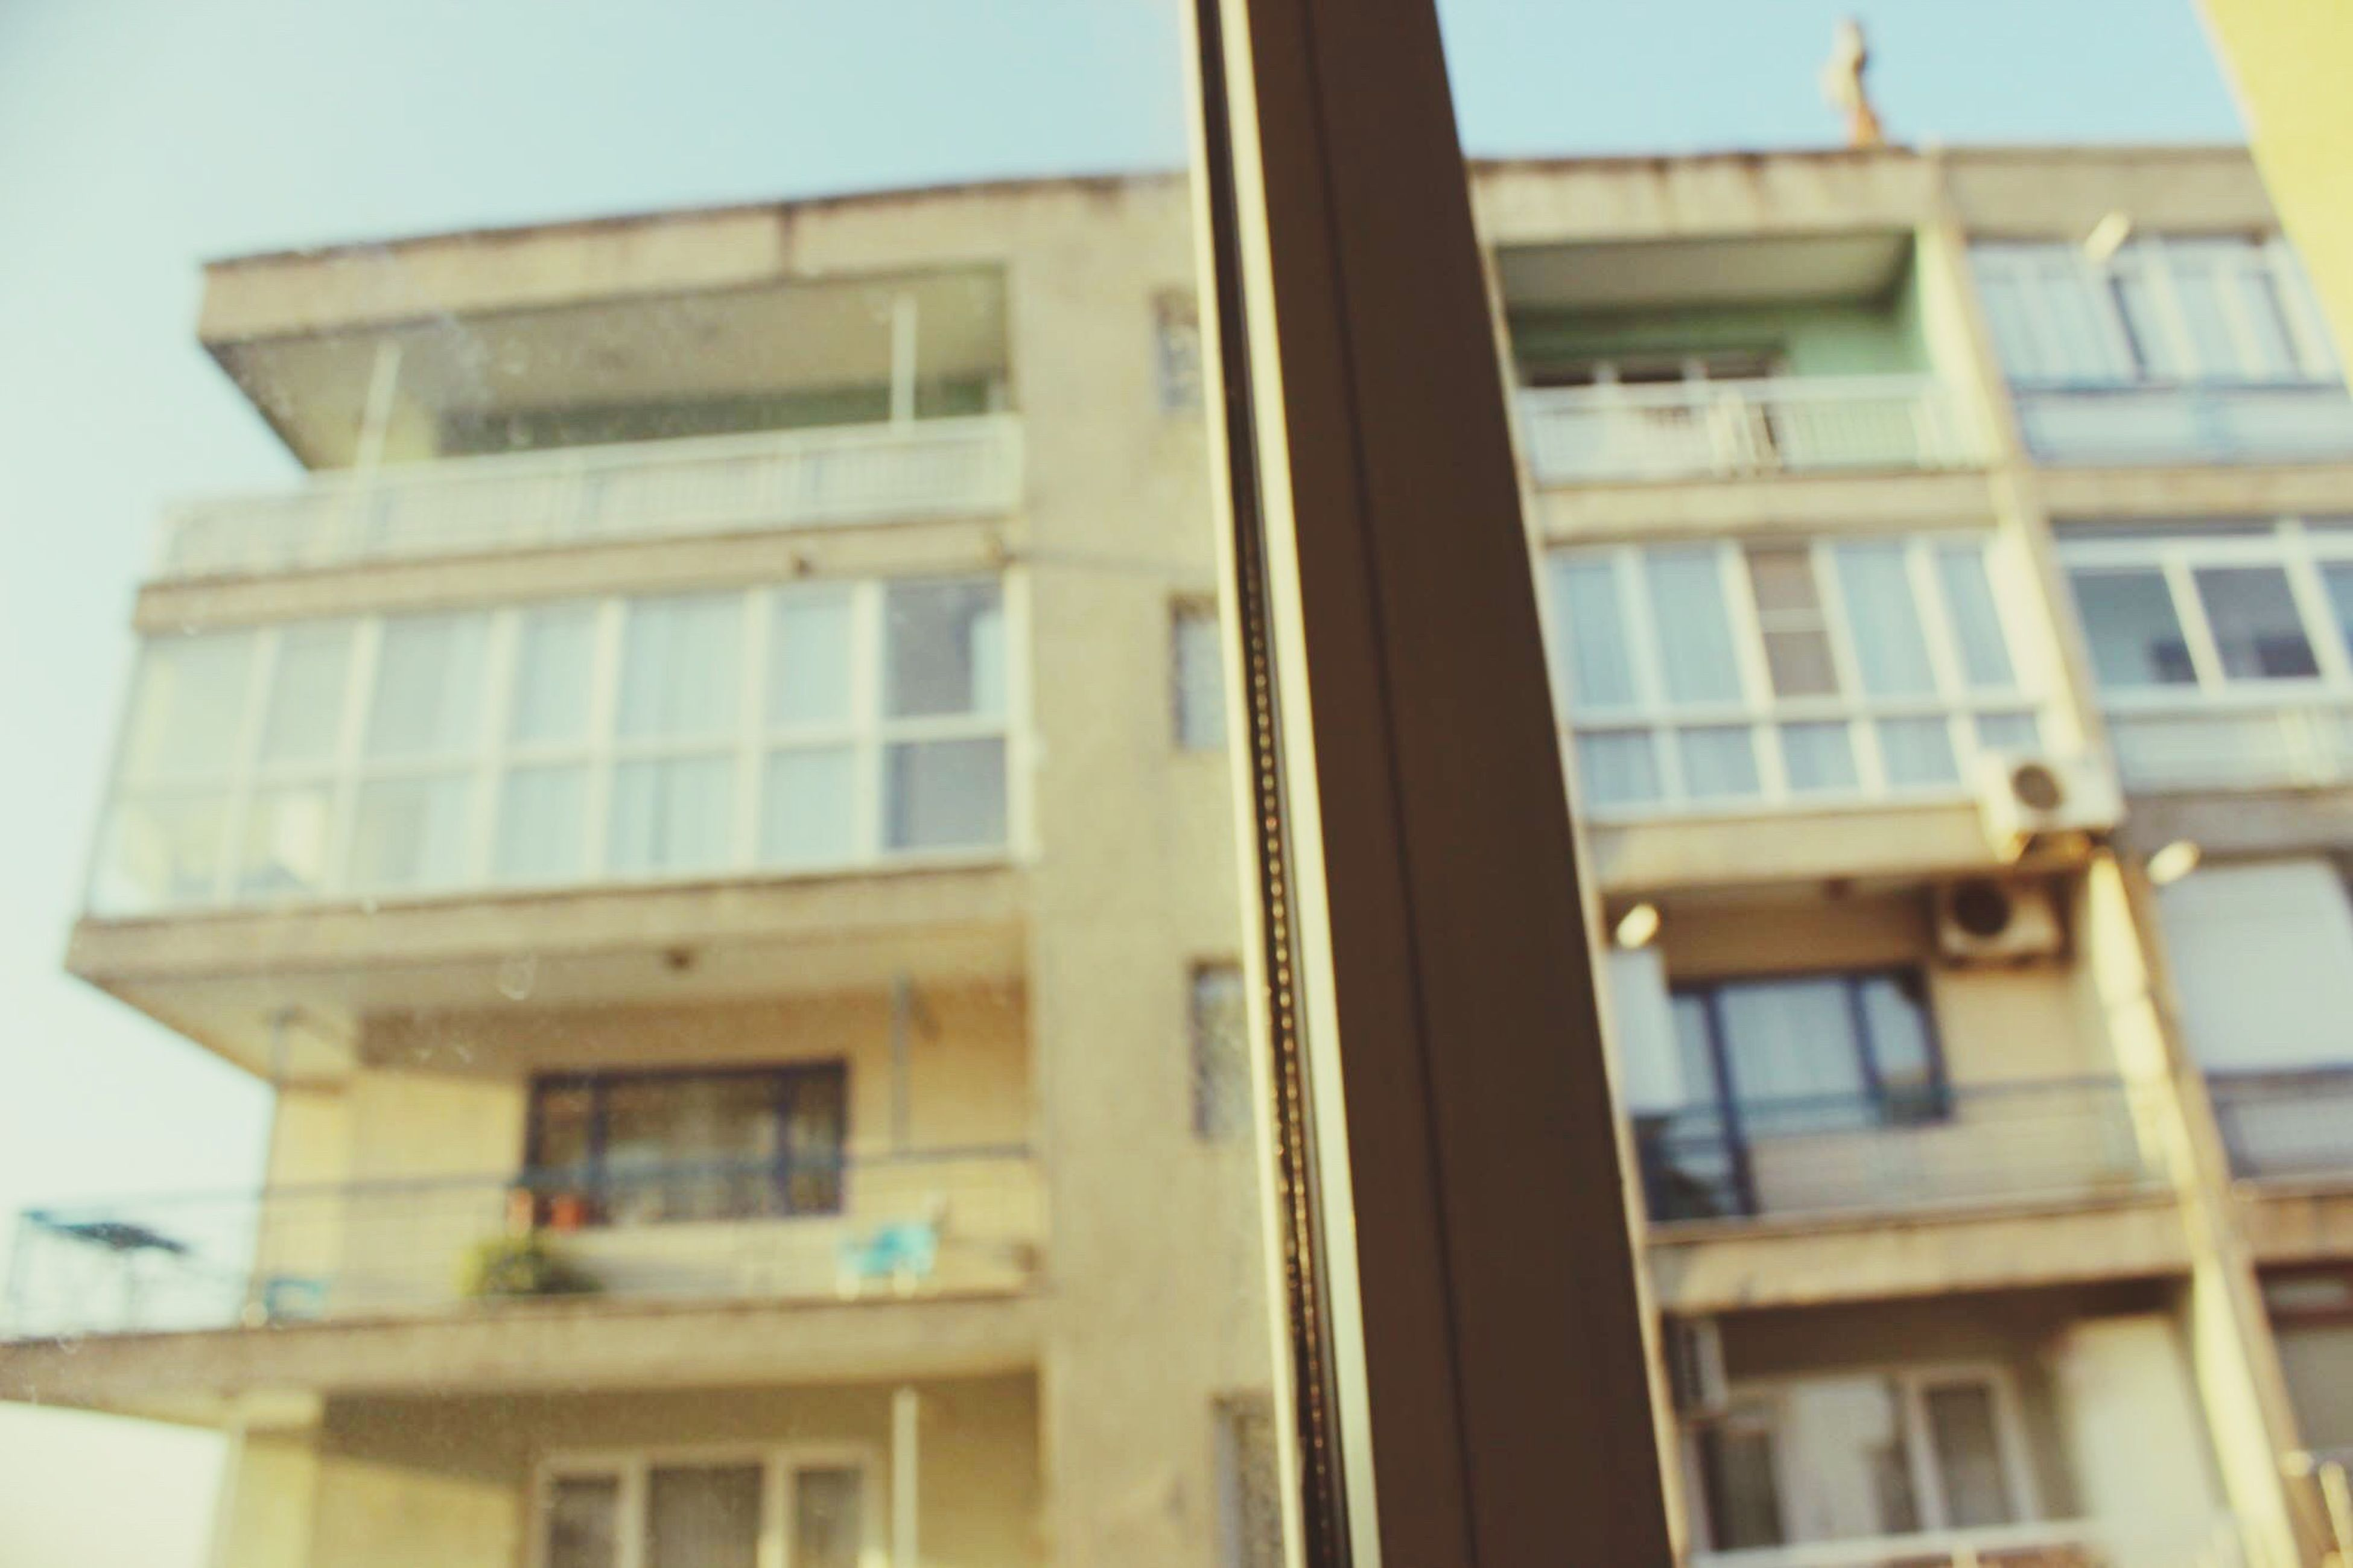 window, architecture, building exterior, no people, built structure, low angle view, balcony, outdoors, day